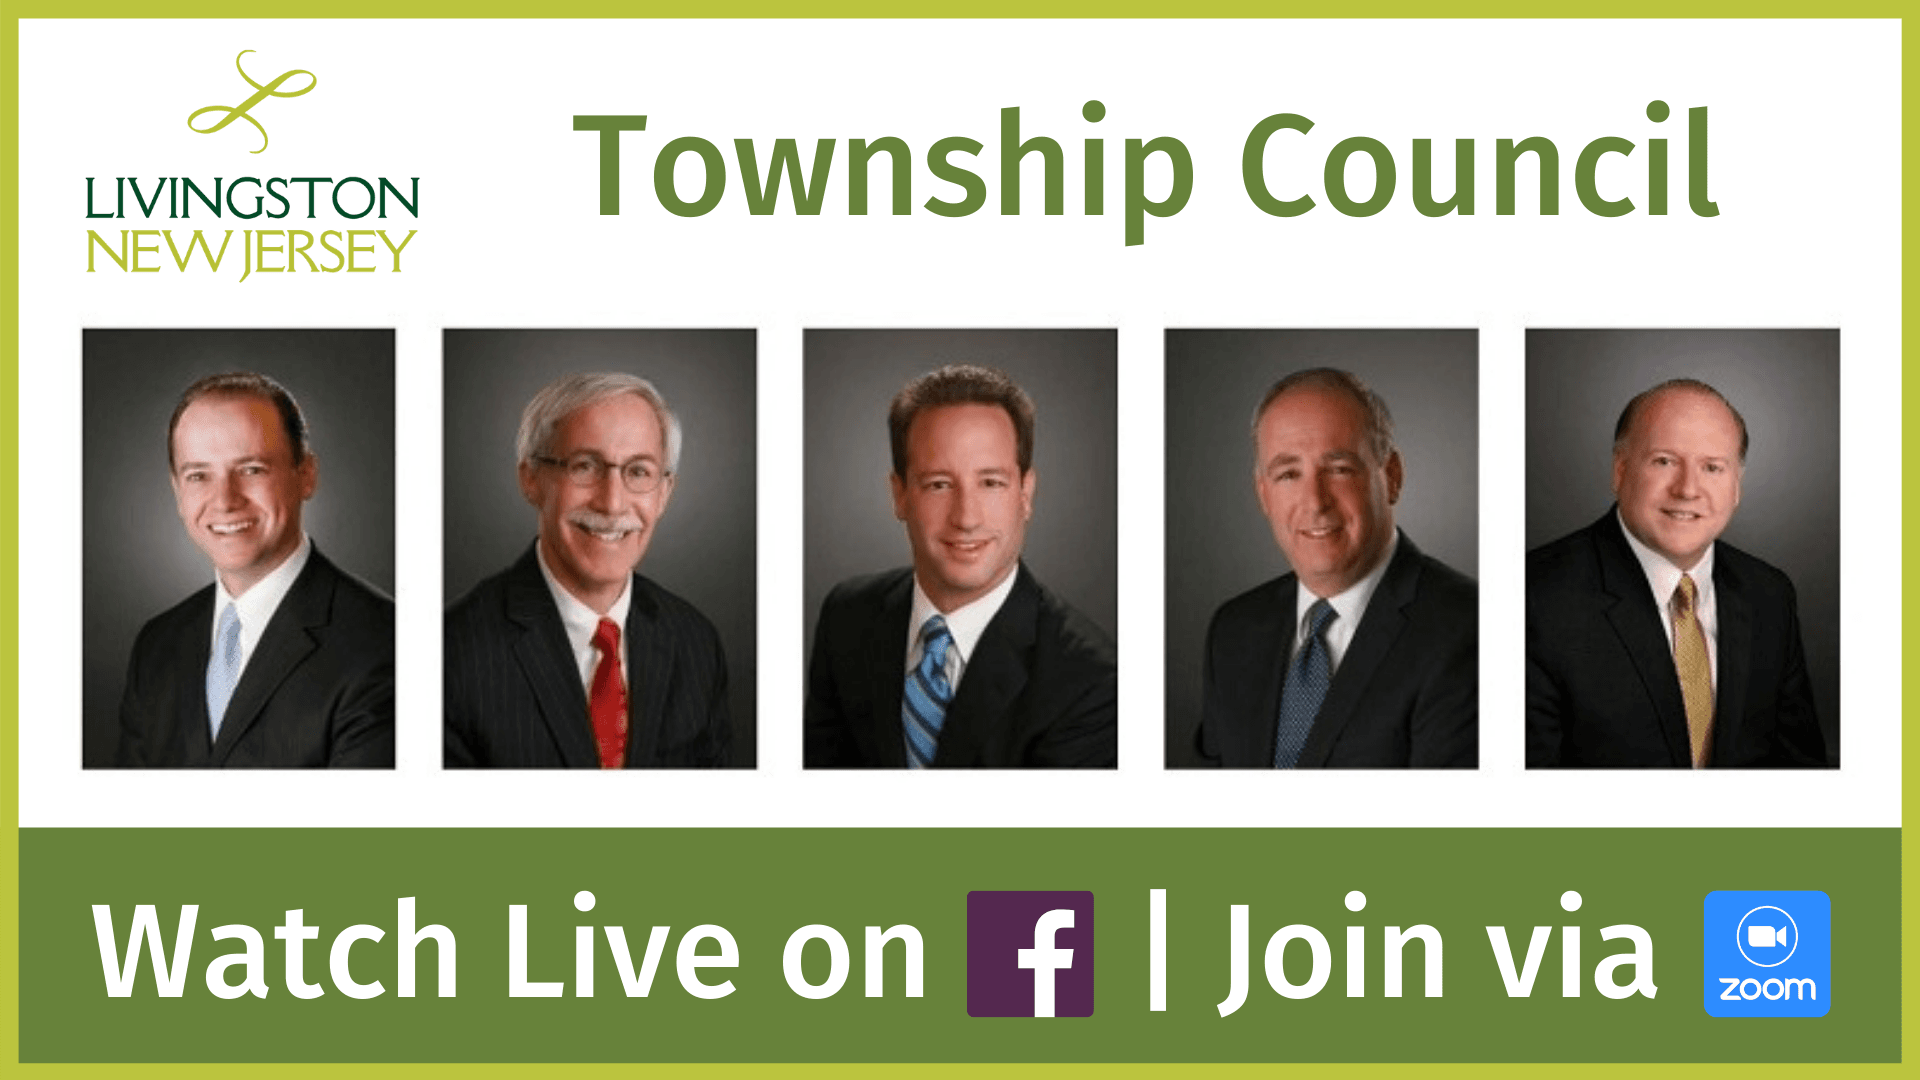 Livingston Township Council - Watch live on Facebook / Join via Zoom. Portrait photos of Council